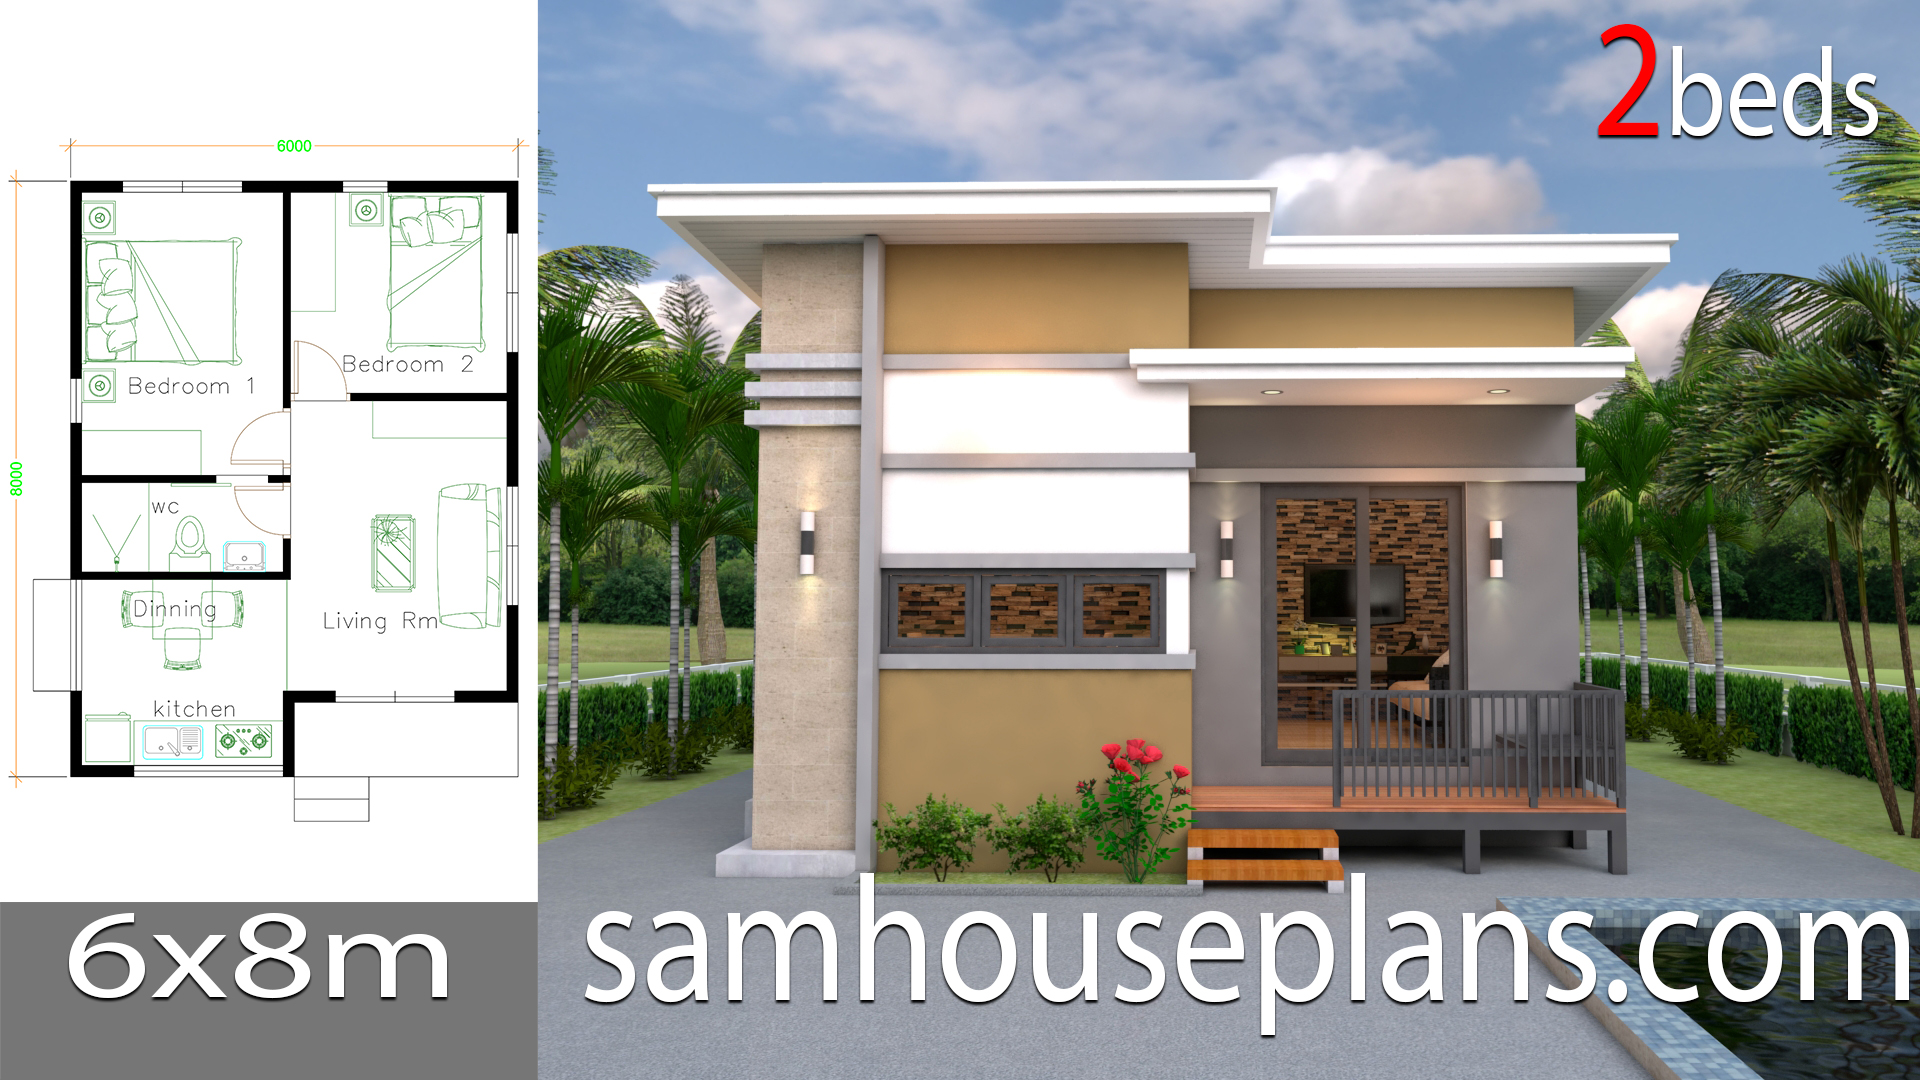 House Design Plans 6x8 With 2 Bedrooms